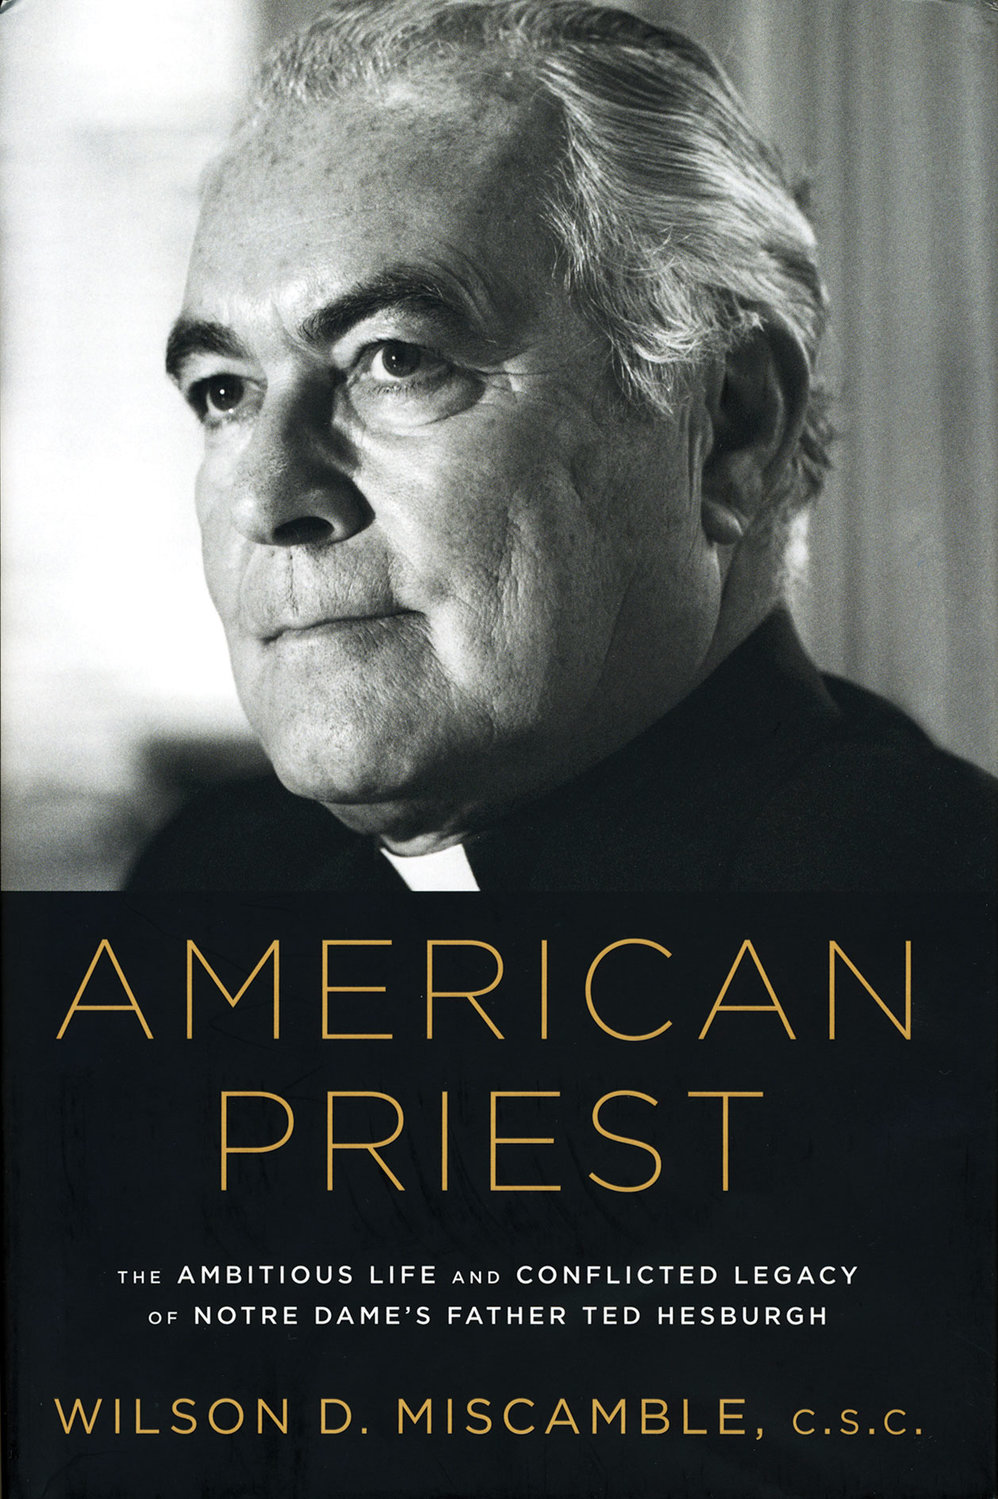 A photo of the late Father Theodore M. Hesburgh, C.S.C., who served as president of the University of Notre Dame for 35 years, graces the book jacket of a recently published biography about his life and legacy at the university and in the Church.